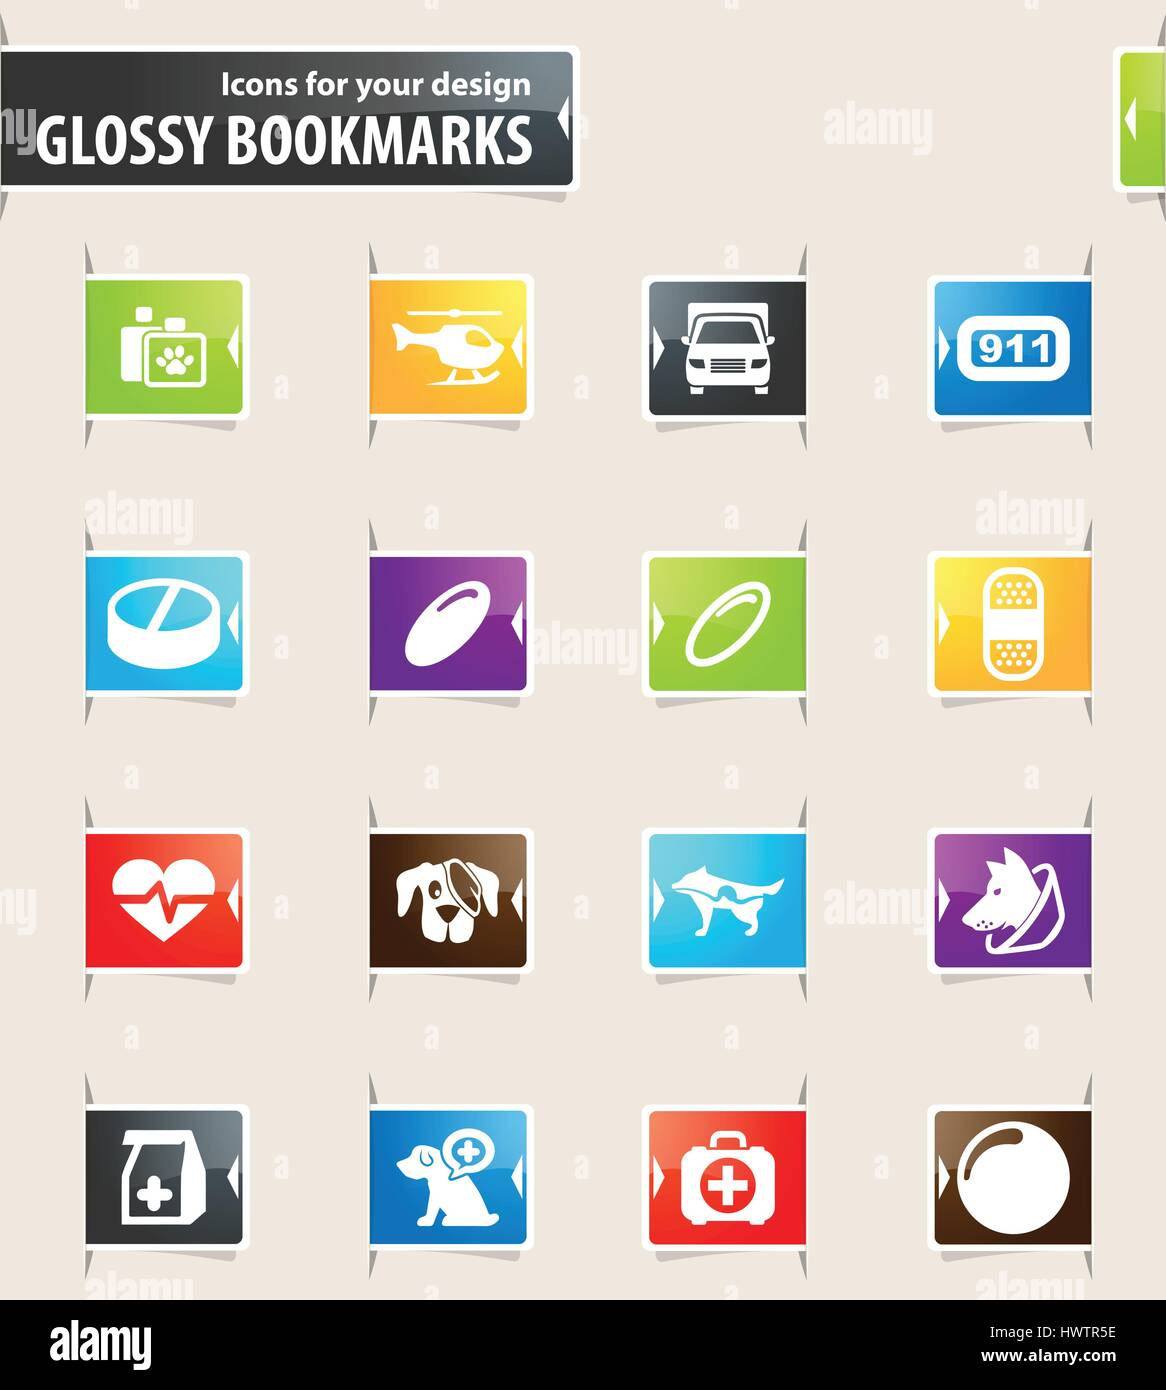 Veterinary clinic icons for your design glossy bookmarks - Stock Vector